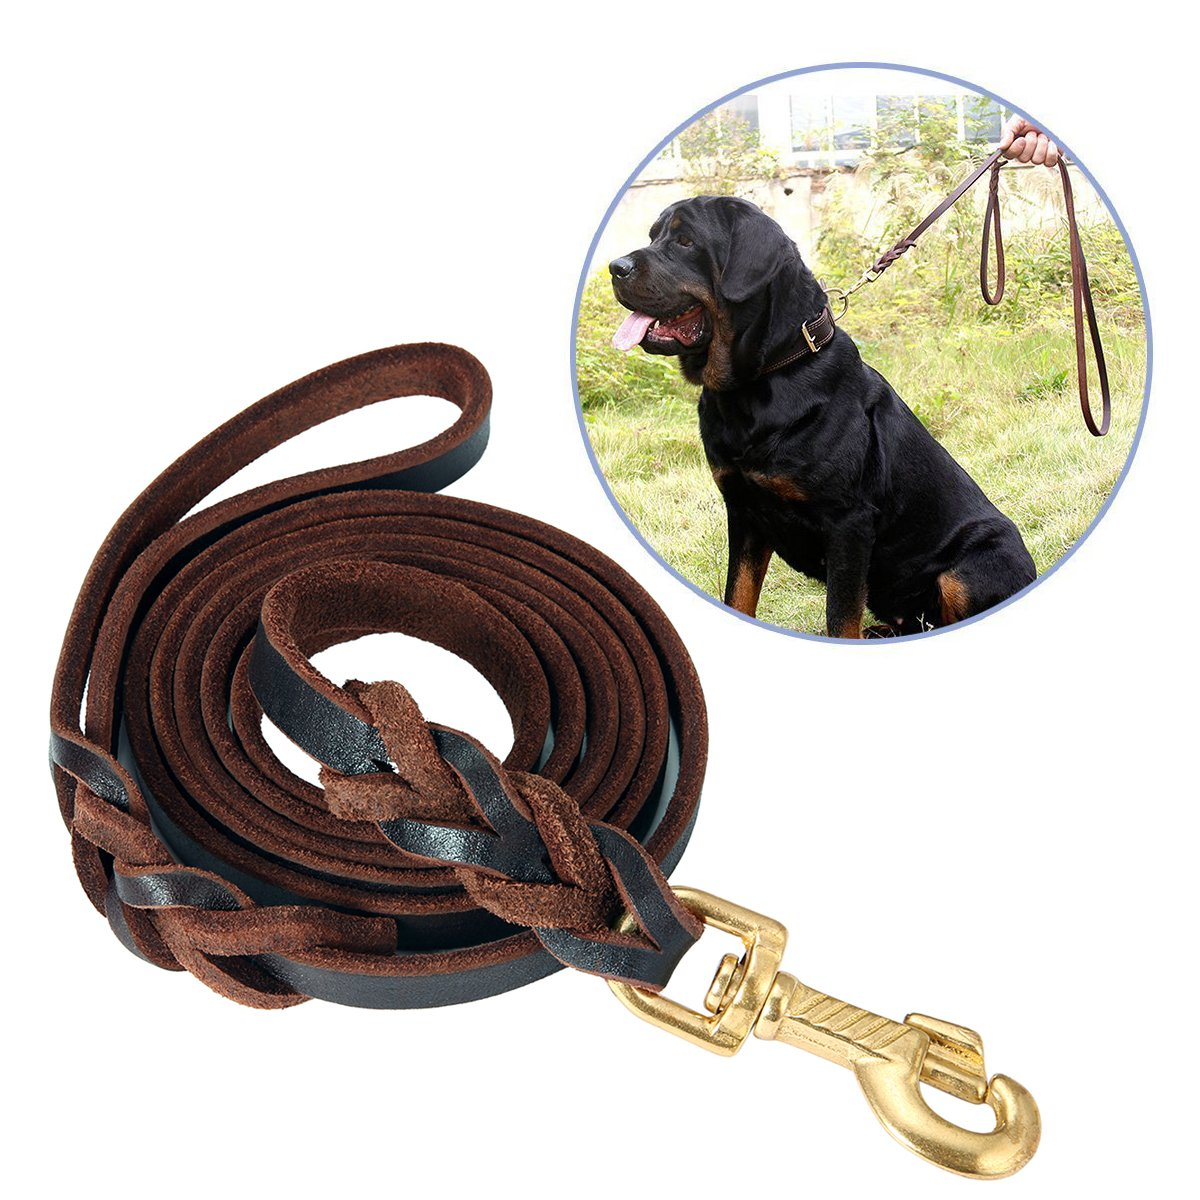 FOCUSPET Leather Dog Leash 6 ft Leather Dog Training Leash Pet Braided Dog Leash for Large Medium Leads Rope Dogs Walking&Training (1/2 Inch,Brown)